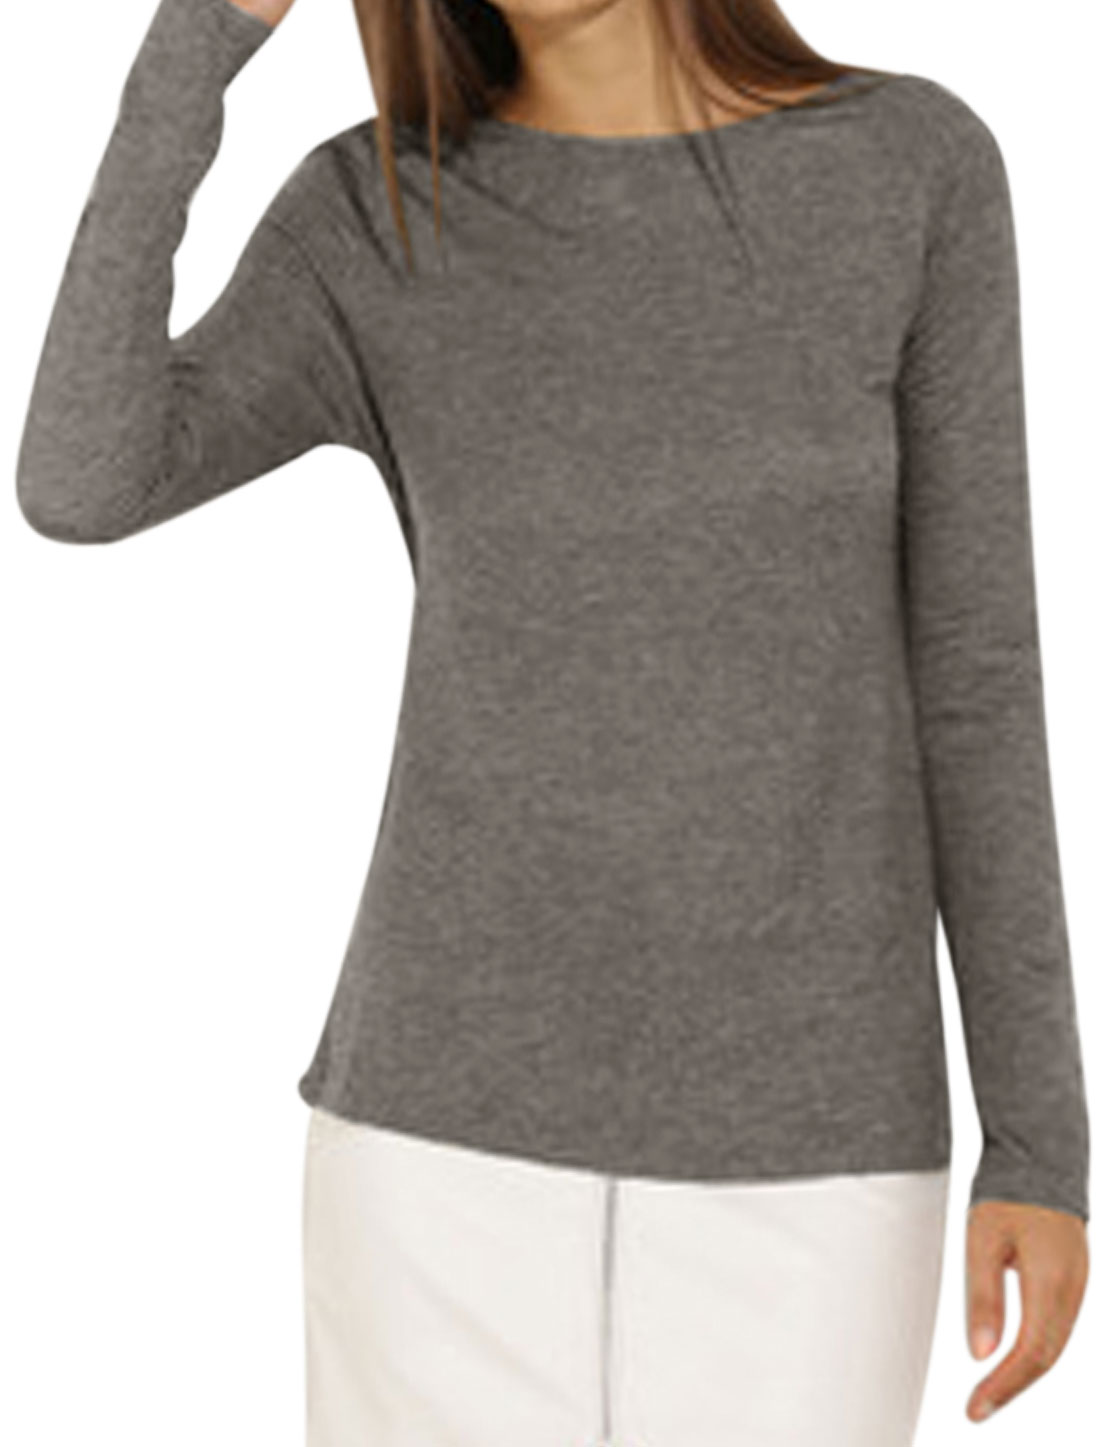 Ladies Crew Neck Long Sleeves Crossover Back Top Gray S